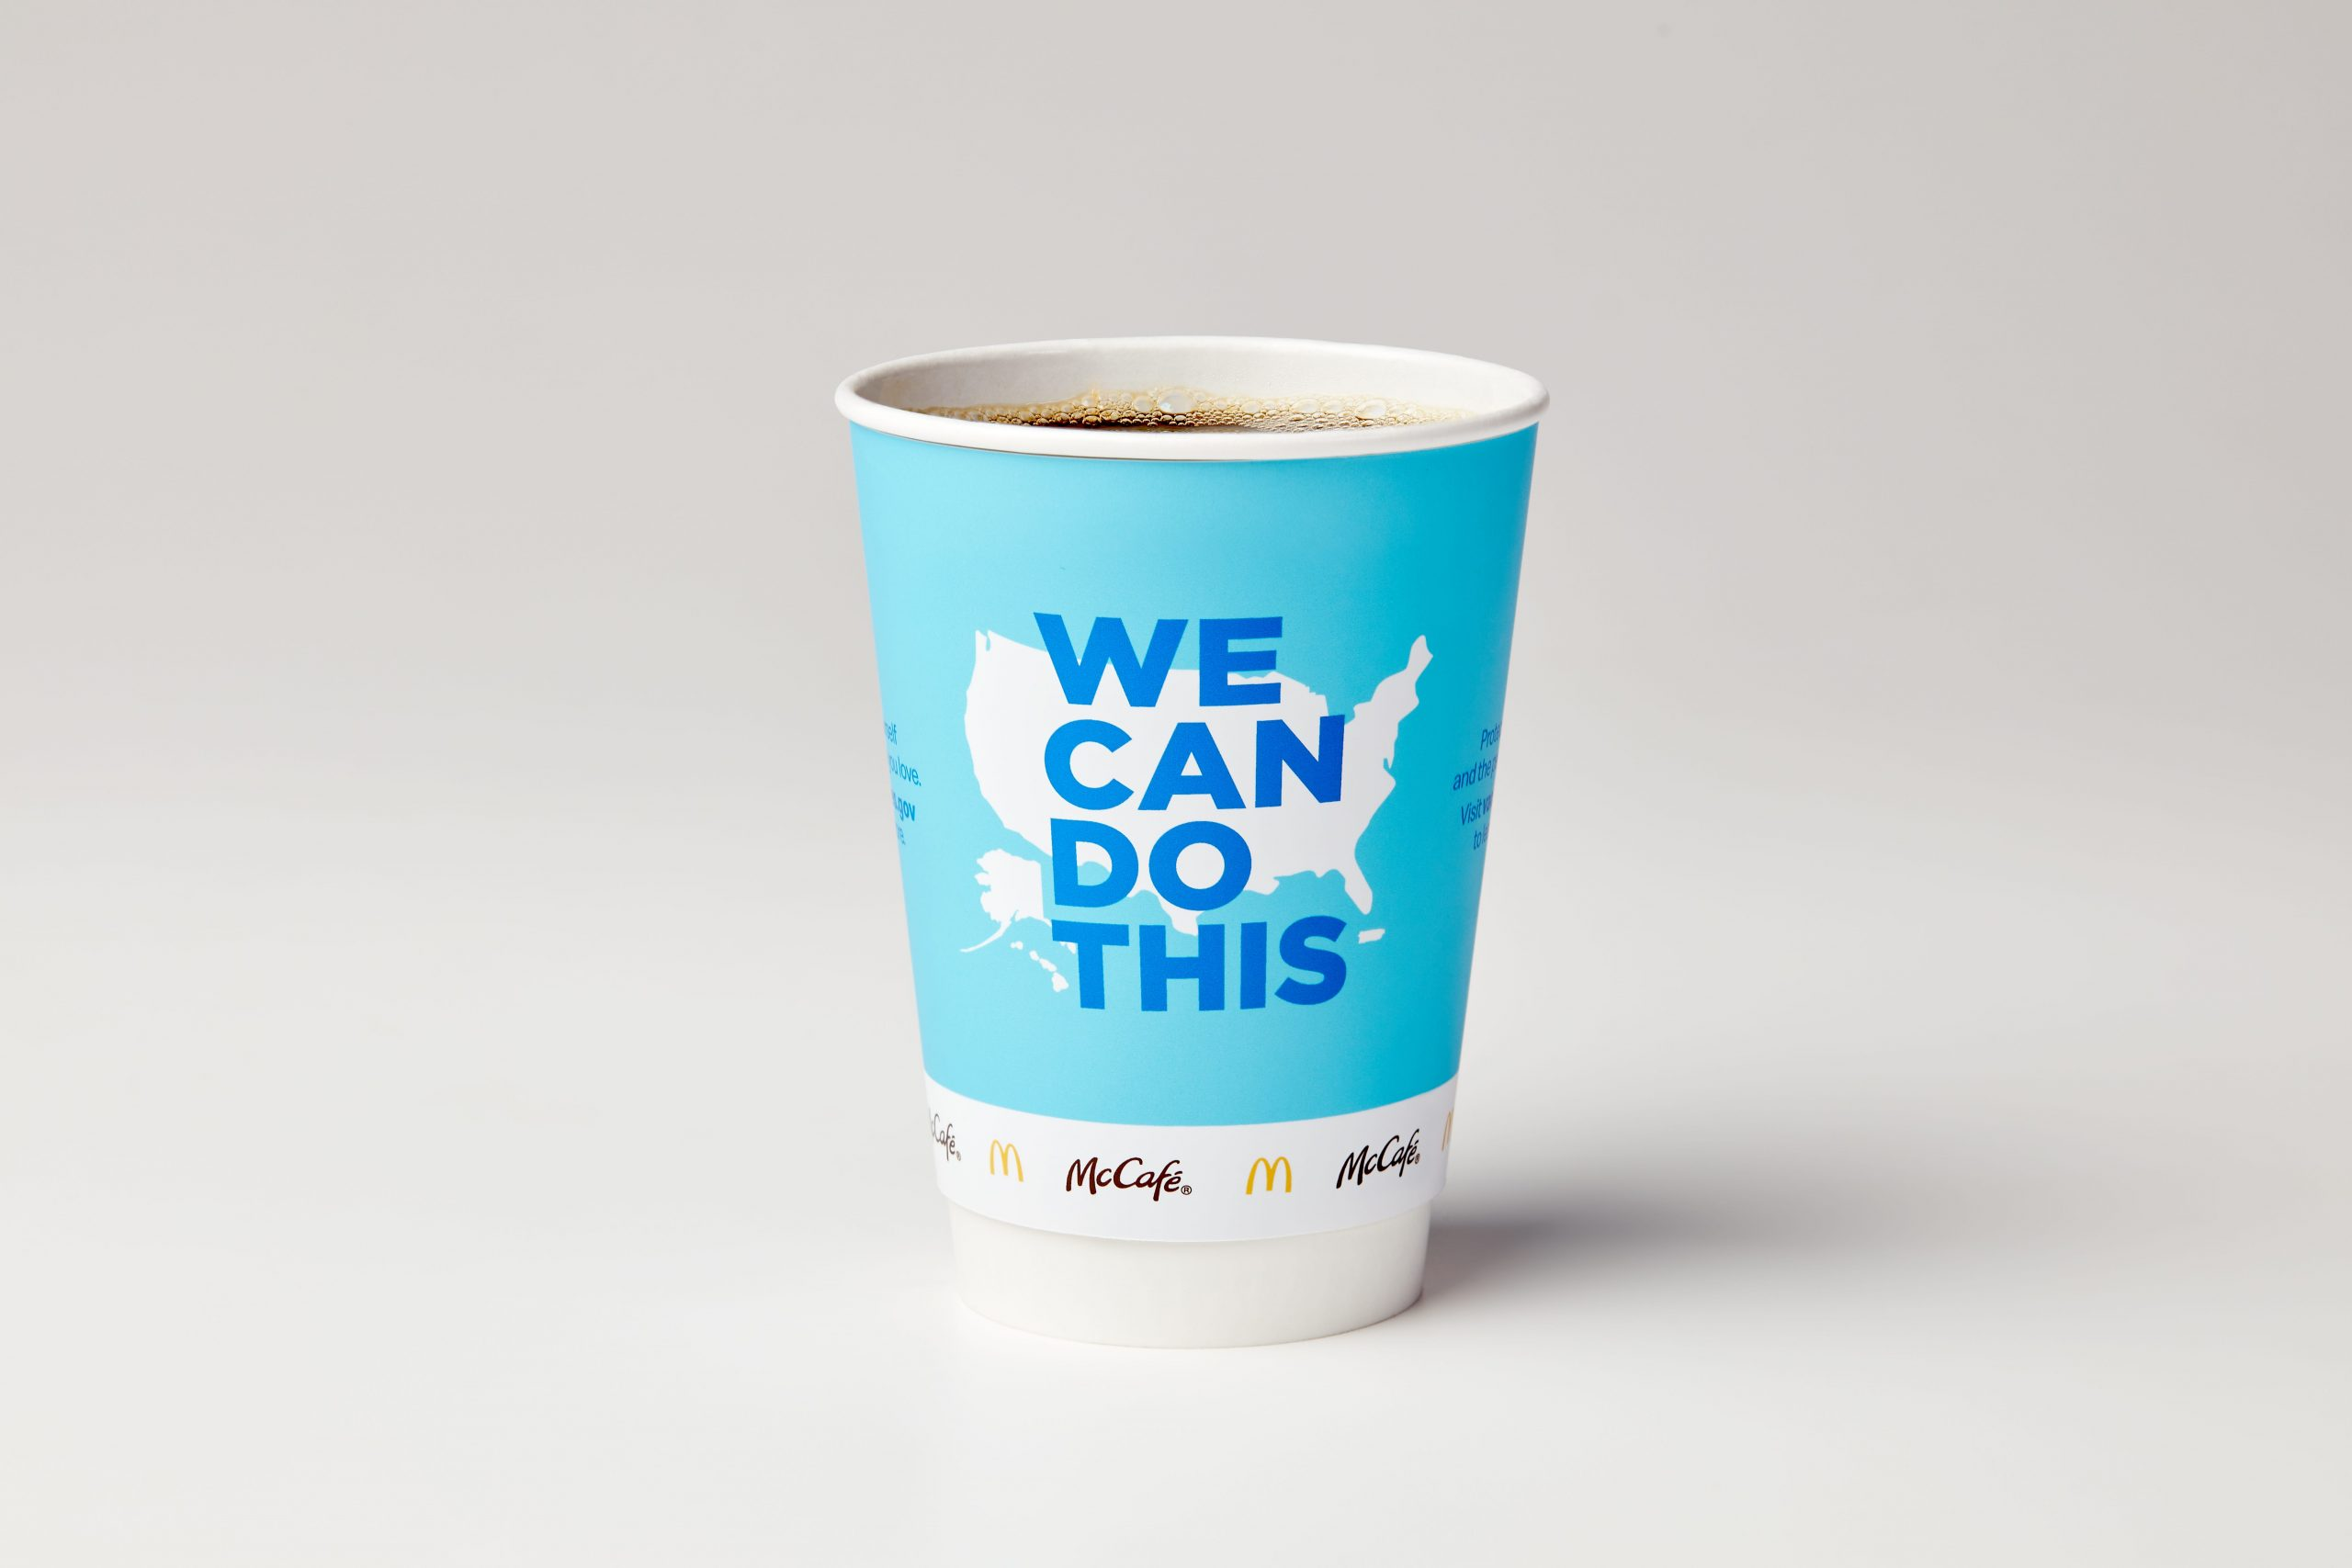 McDonald's is bringing this COVID-19 vaccine awareness message to its coffee cups, Times Square billboard